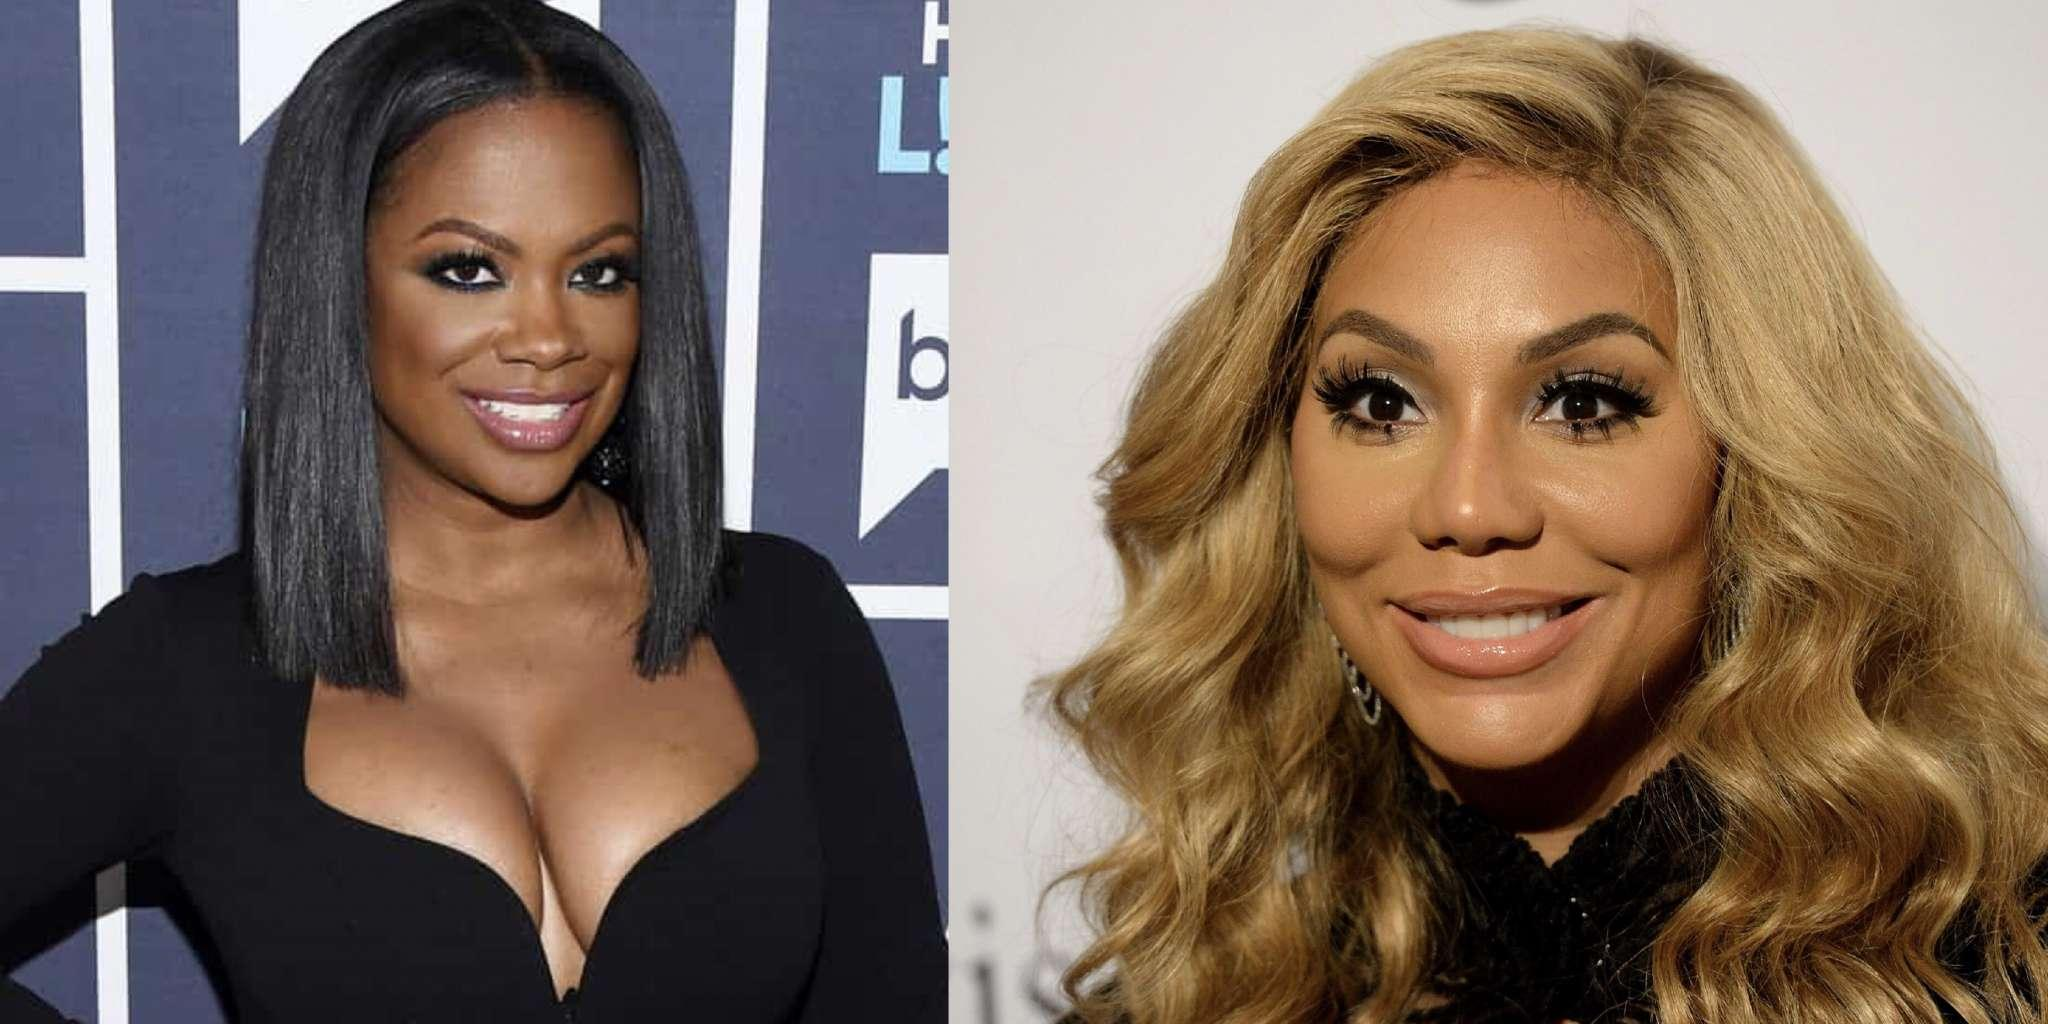 Tamar Braxton Makes Fans Laugh, Checking On Her Summer Body Progress - Kandi Burruss Says She's In The Same Situation